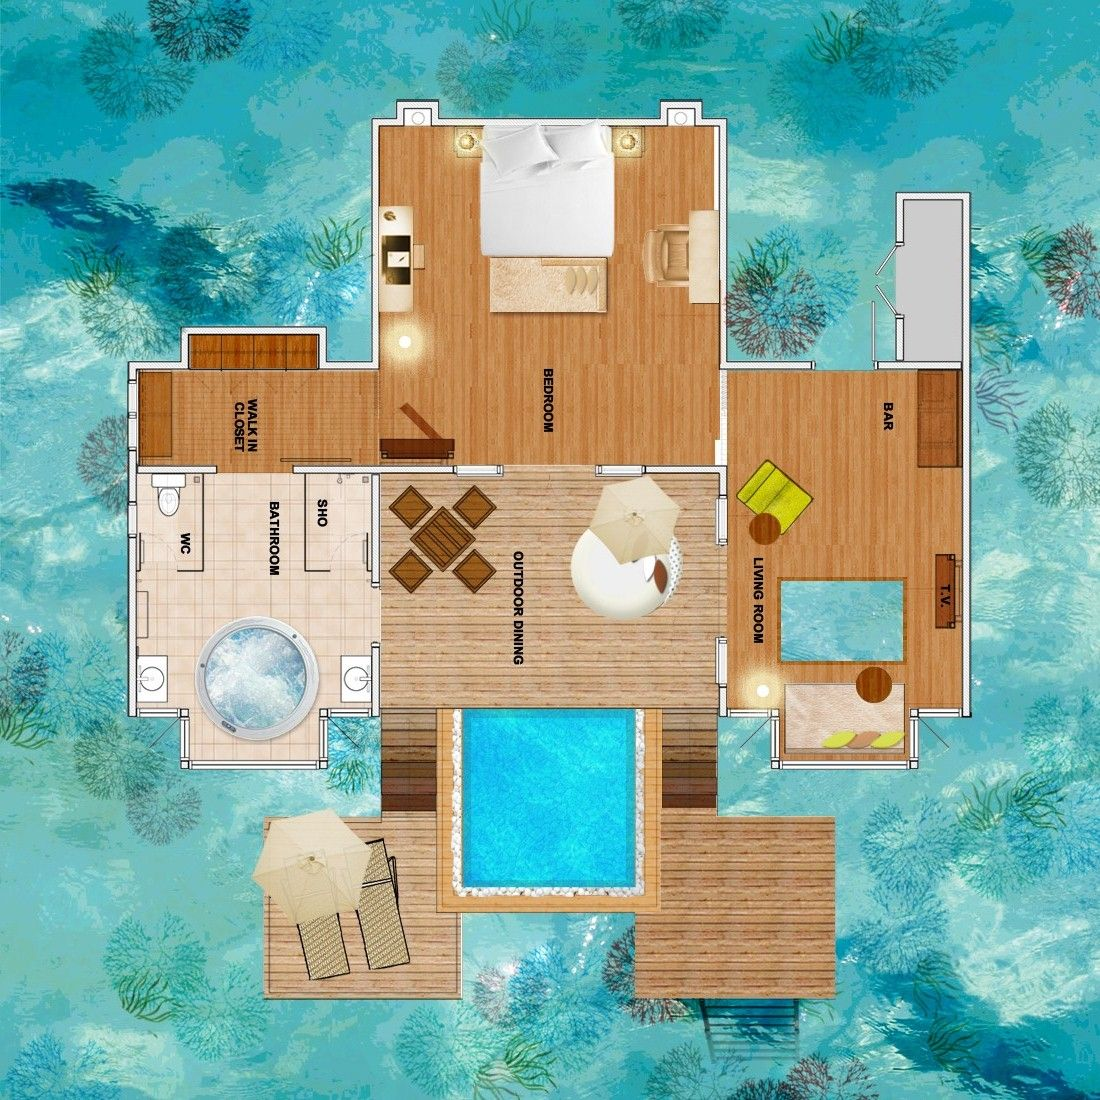 Luxury Homes On The Water: Overwater Bungalow Floor Plan - Google Search